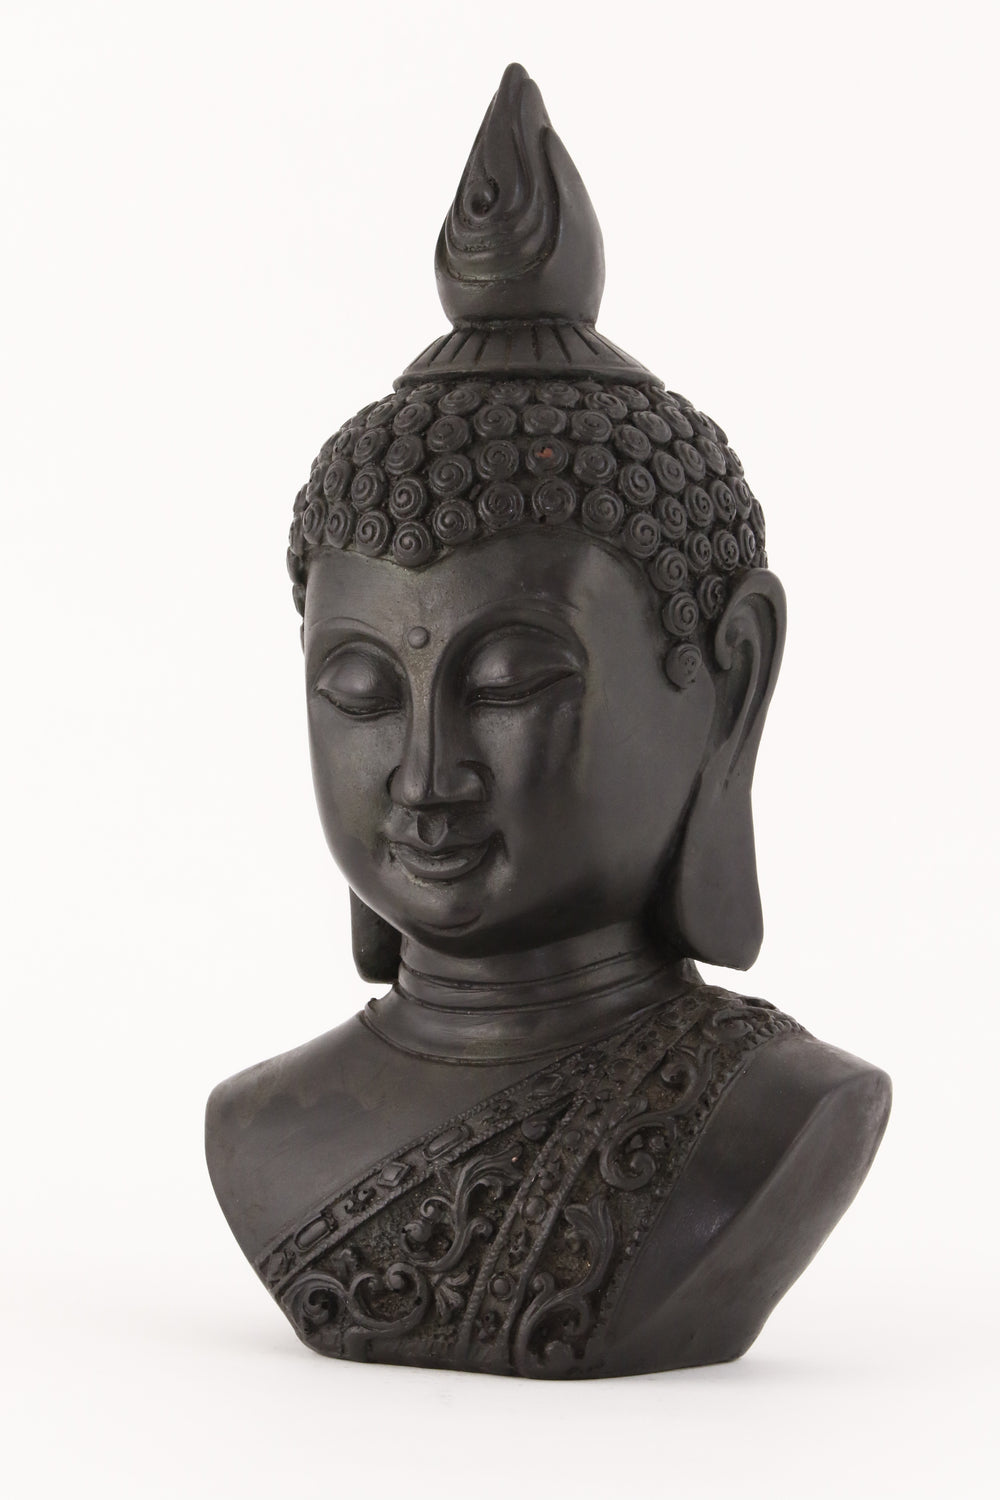 BUDDHA BUST STATUE DARK SIDE VIEW